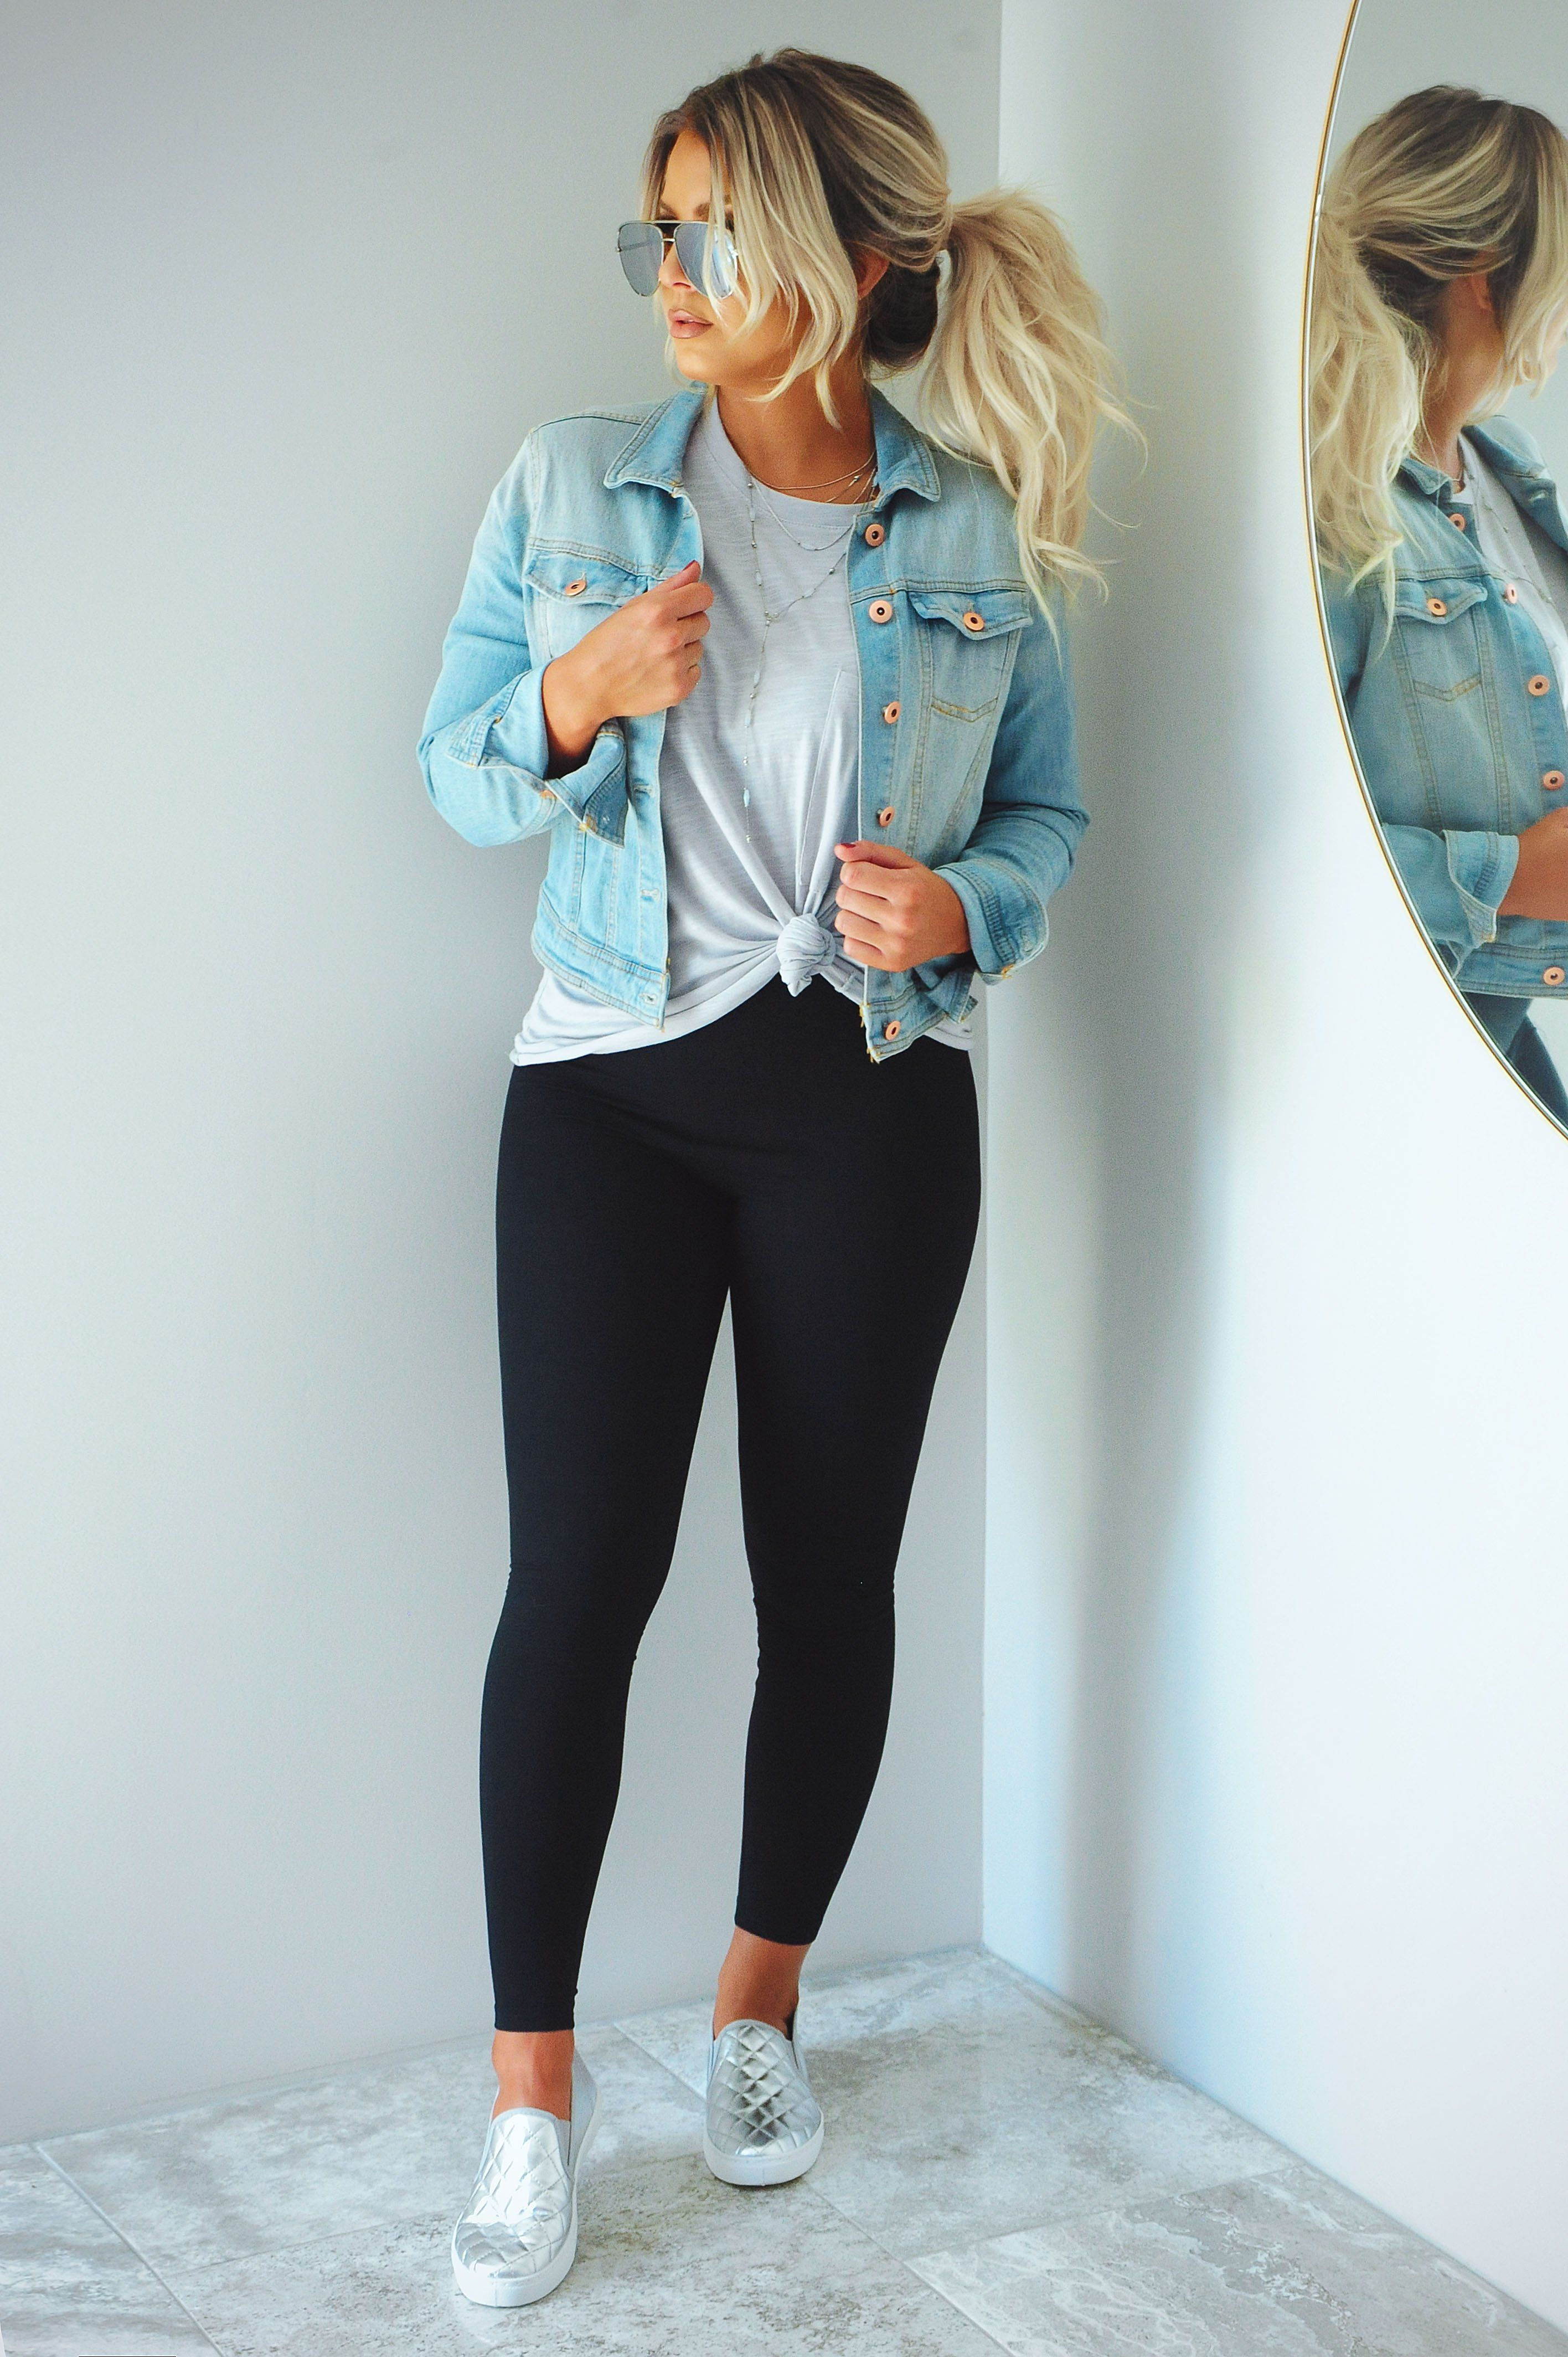 Share To Save 10 On Your Order Instantly Cute Casual Jacket Denim Casual Fall Outfits Outfits With Leggings Everyday Outfits [ 4256 x 2832 Pixel ]